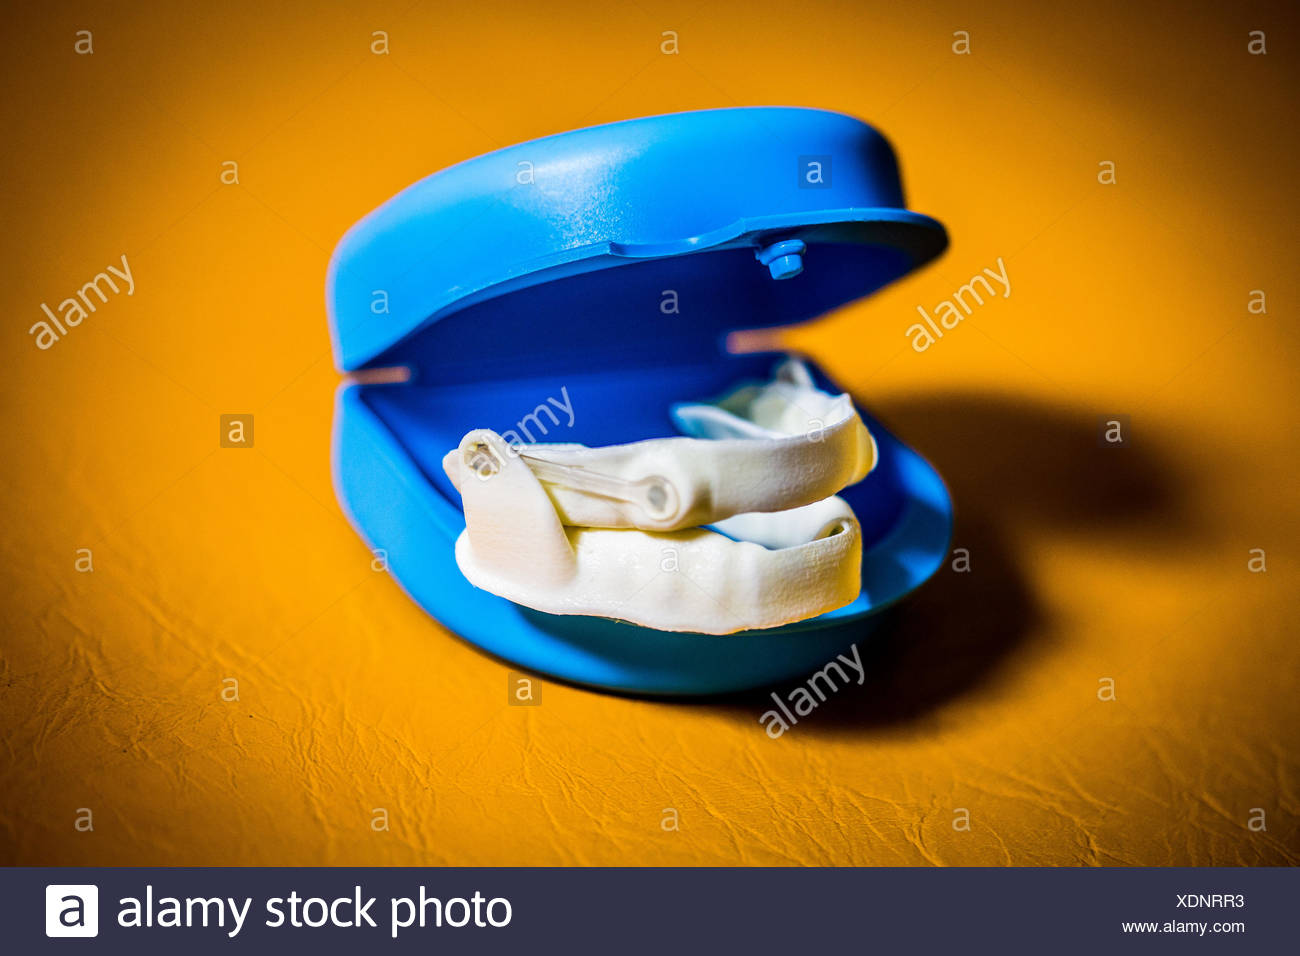 Anti-snoring mandibular orthosis. - Stock Image